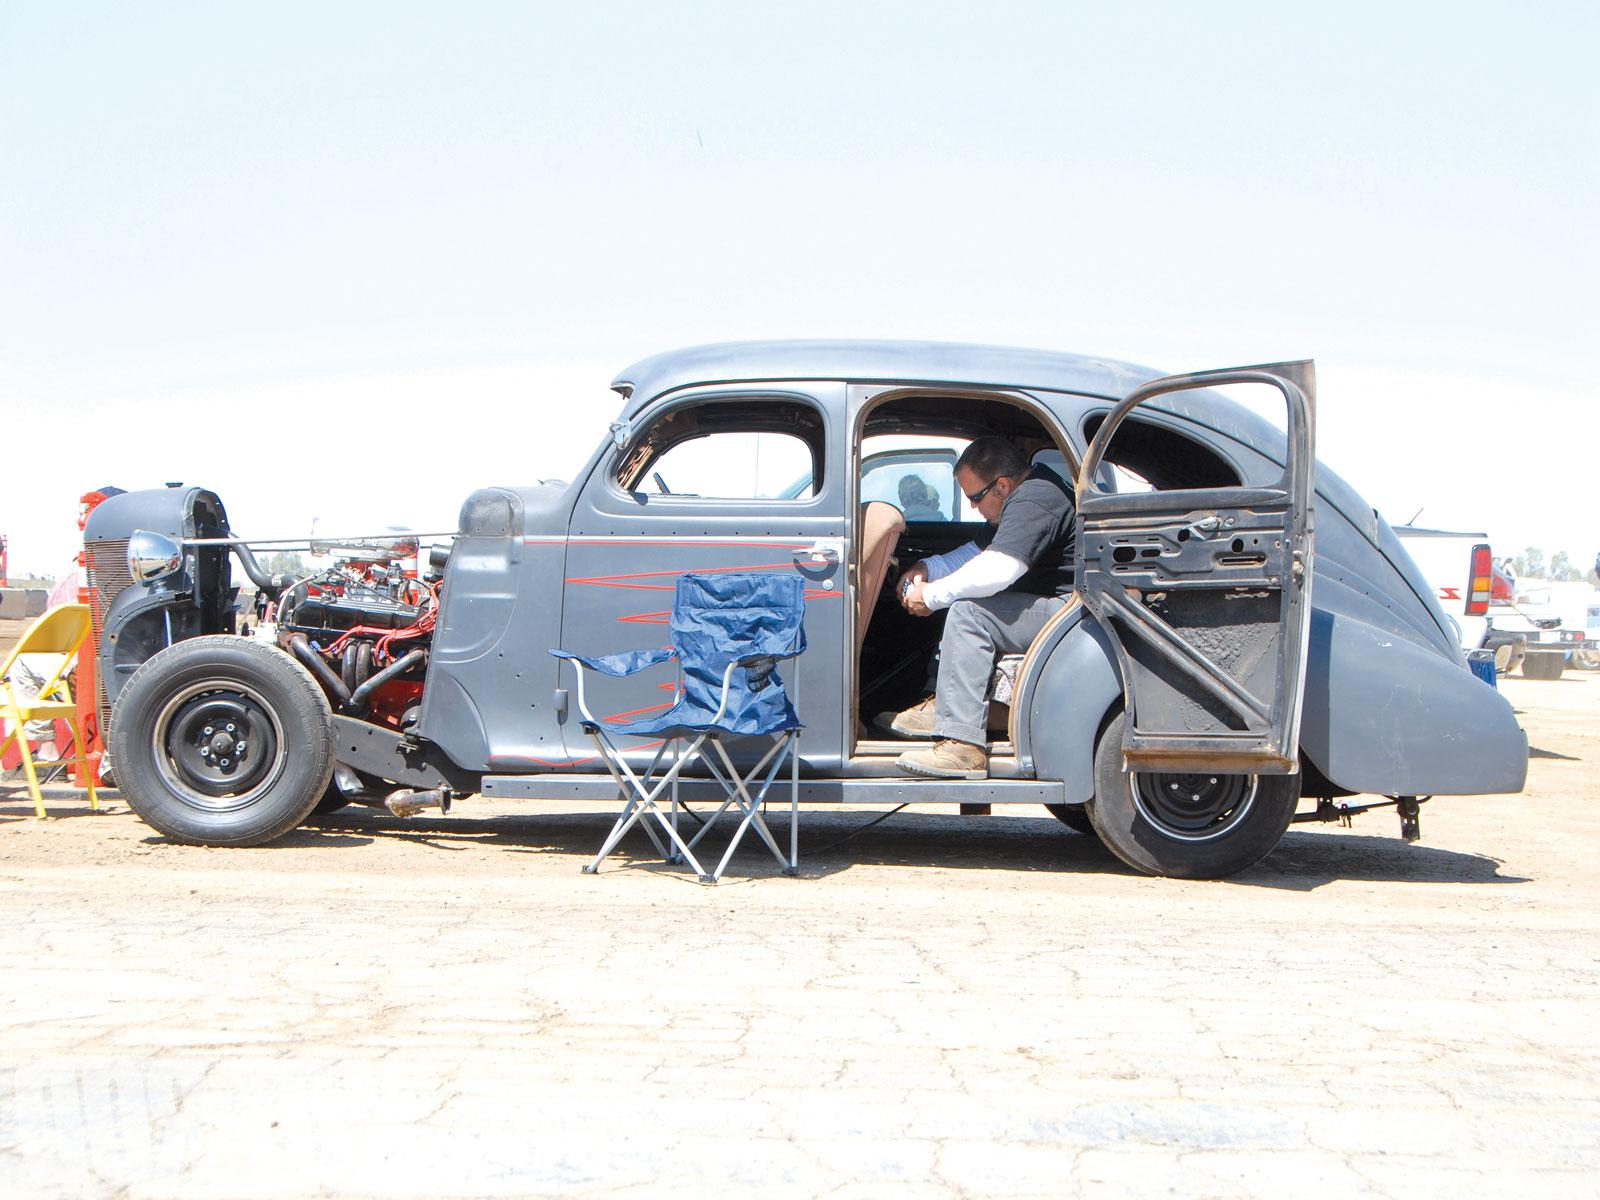 Old Airfield Drag Racing No